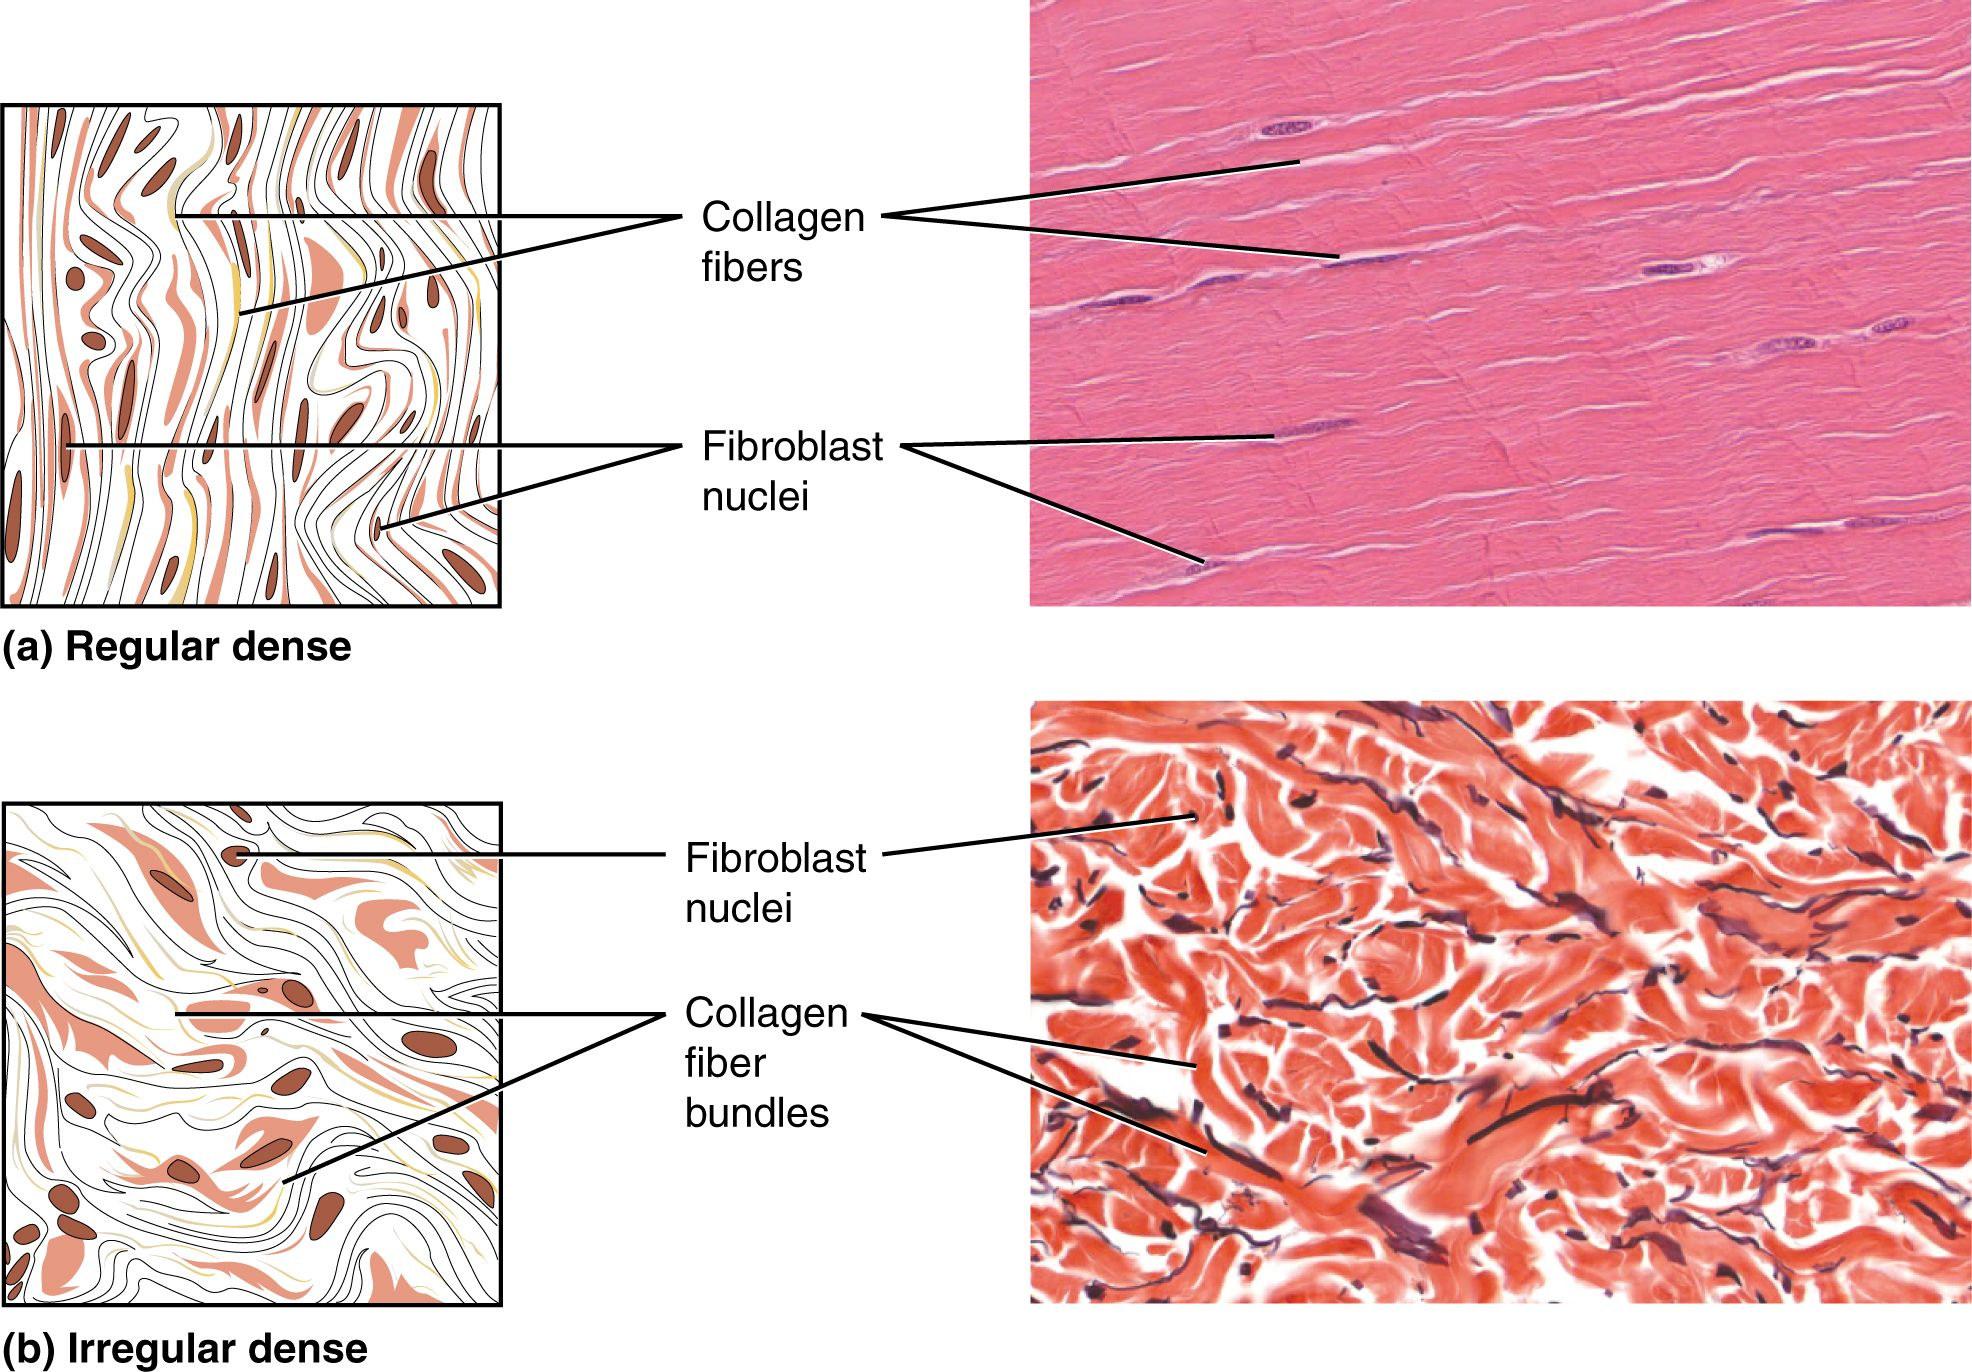 Part A Shows A Diagram Of Regular Dense Connective Tissue